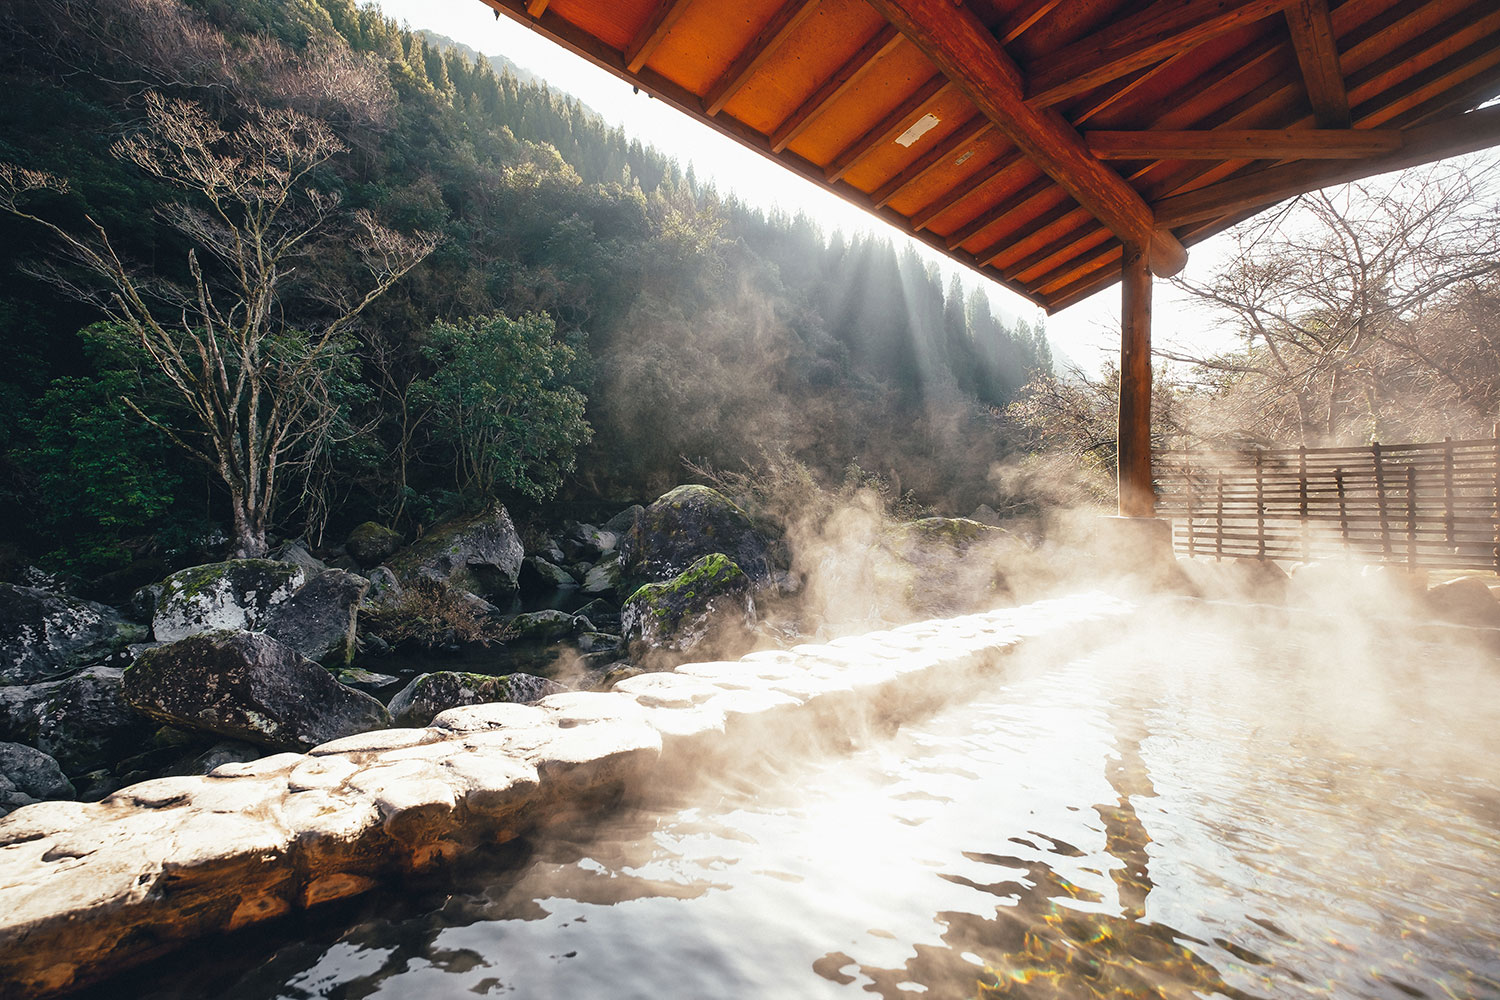 Hot Spring in the Midst of a Mountain Stream